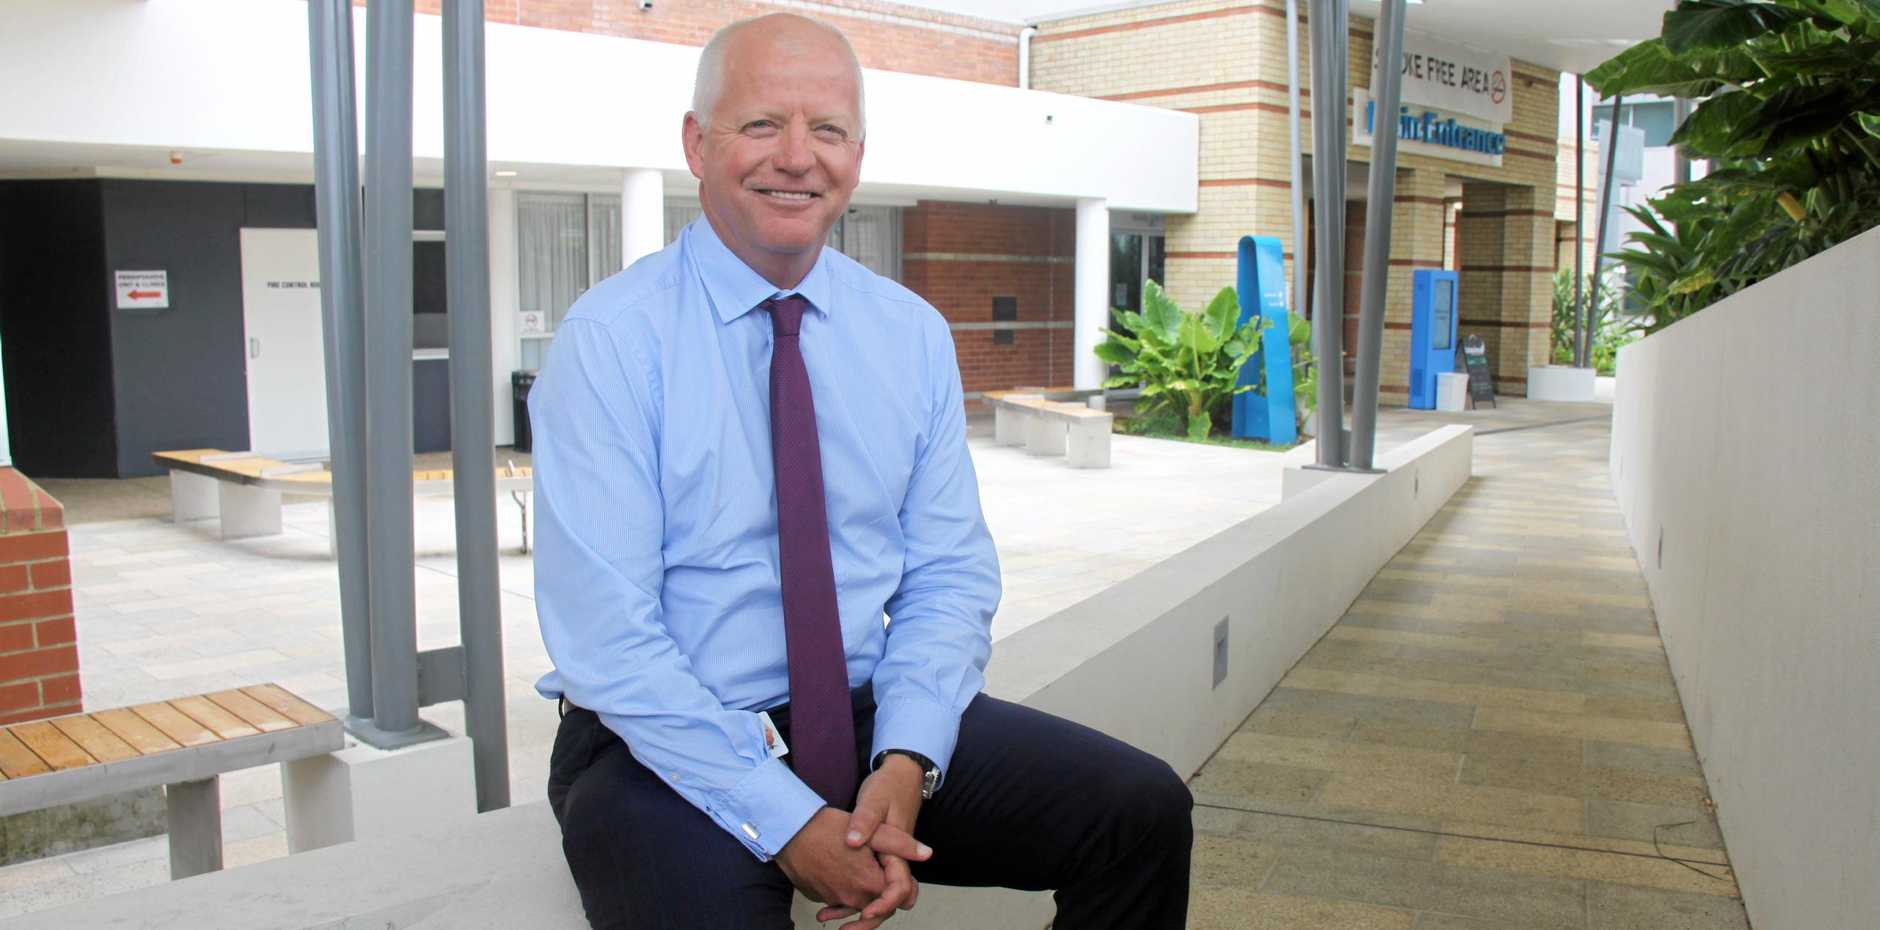 HEALTHY CAREER: Chief executive of the Northern New South Wales Local Health District, Wayne Jones, spent 10 years as a nurse before moving into management.